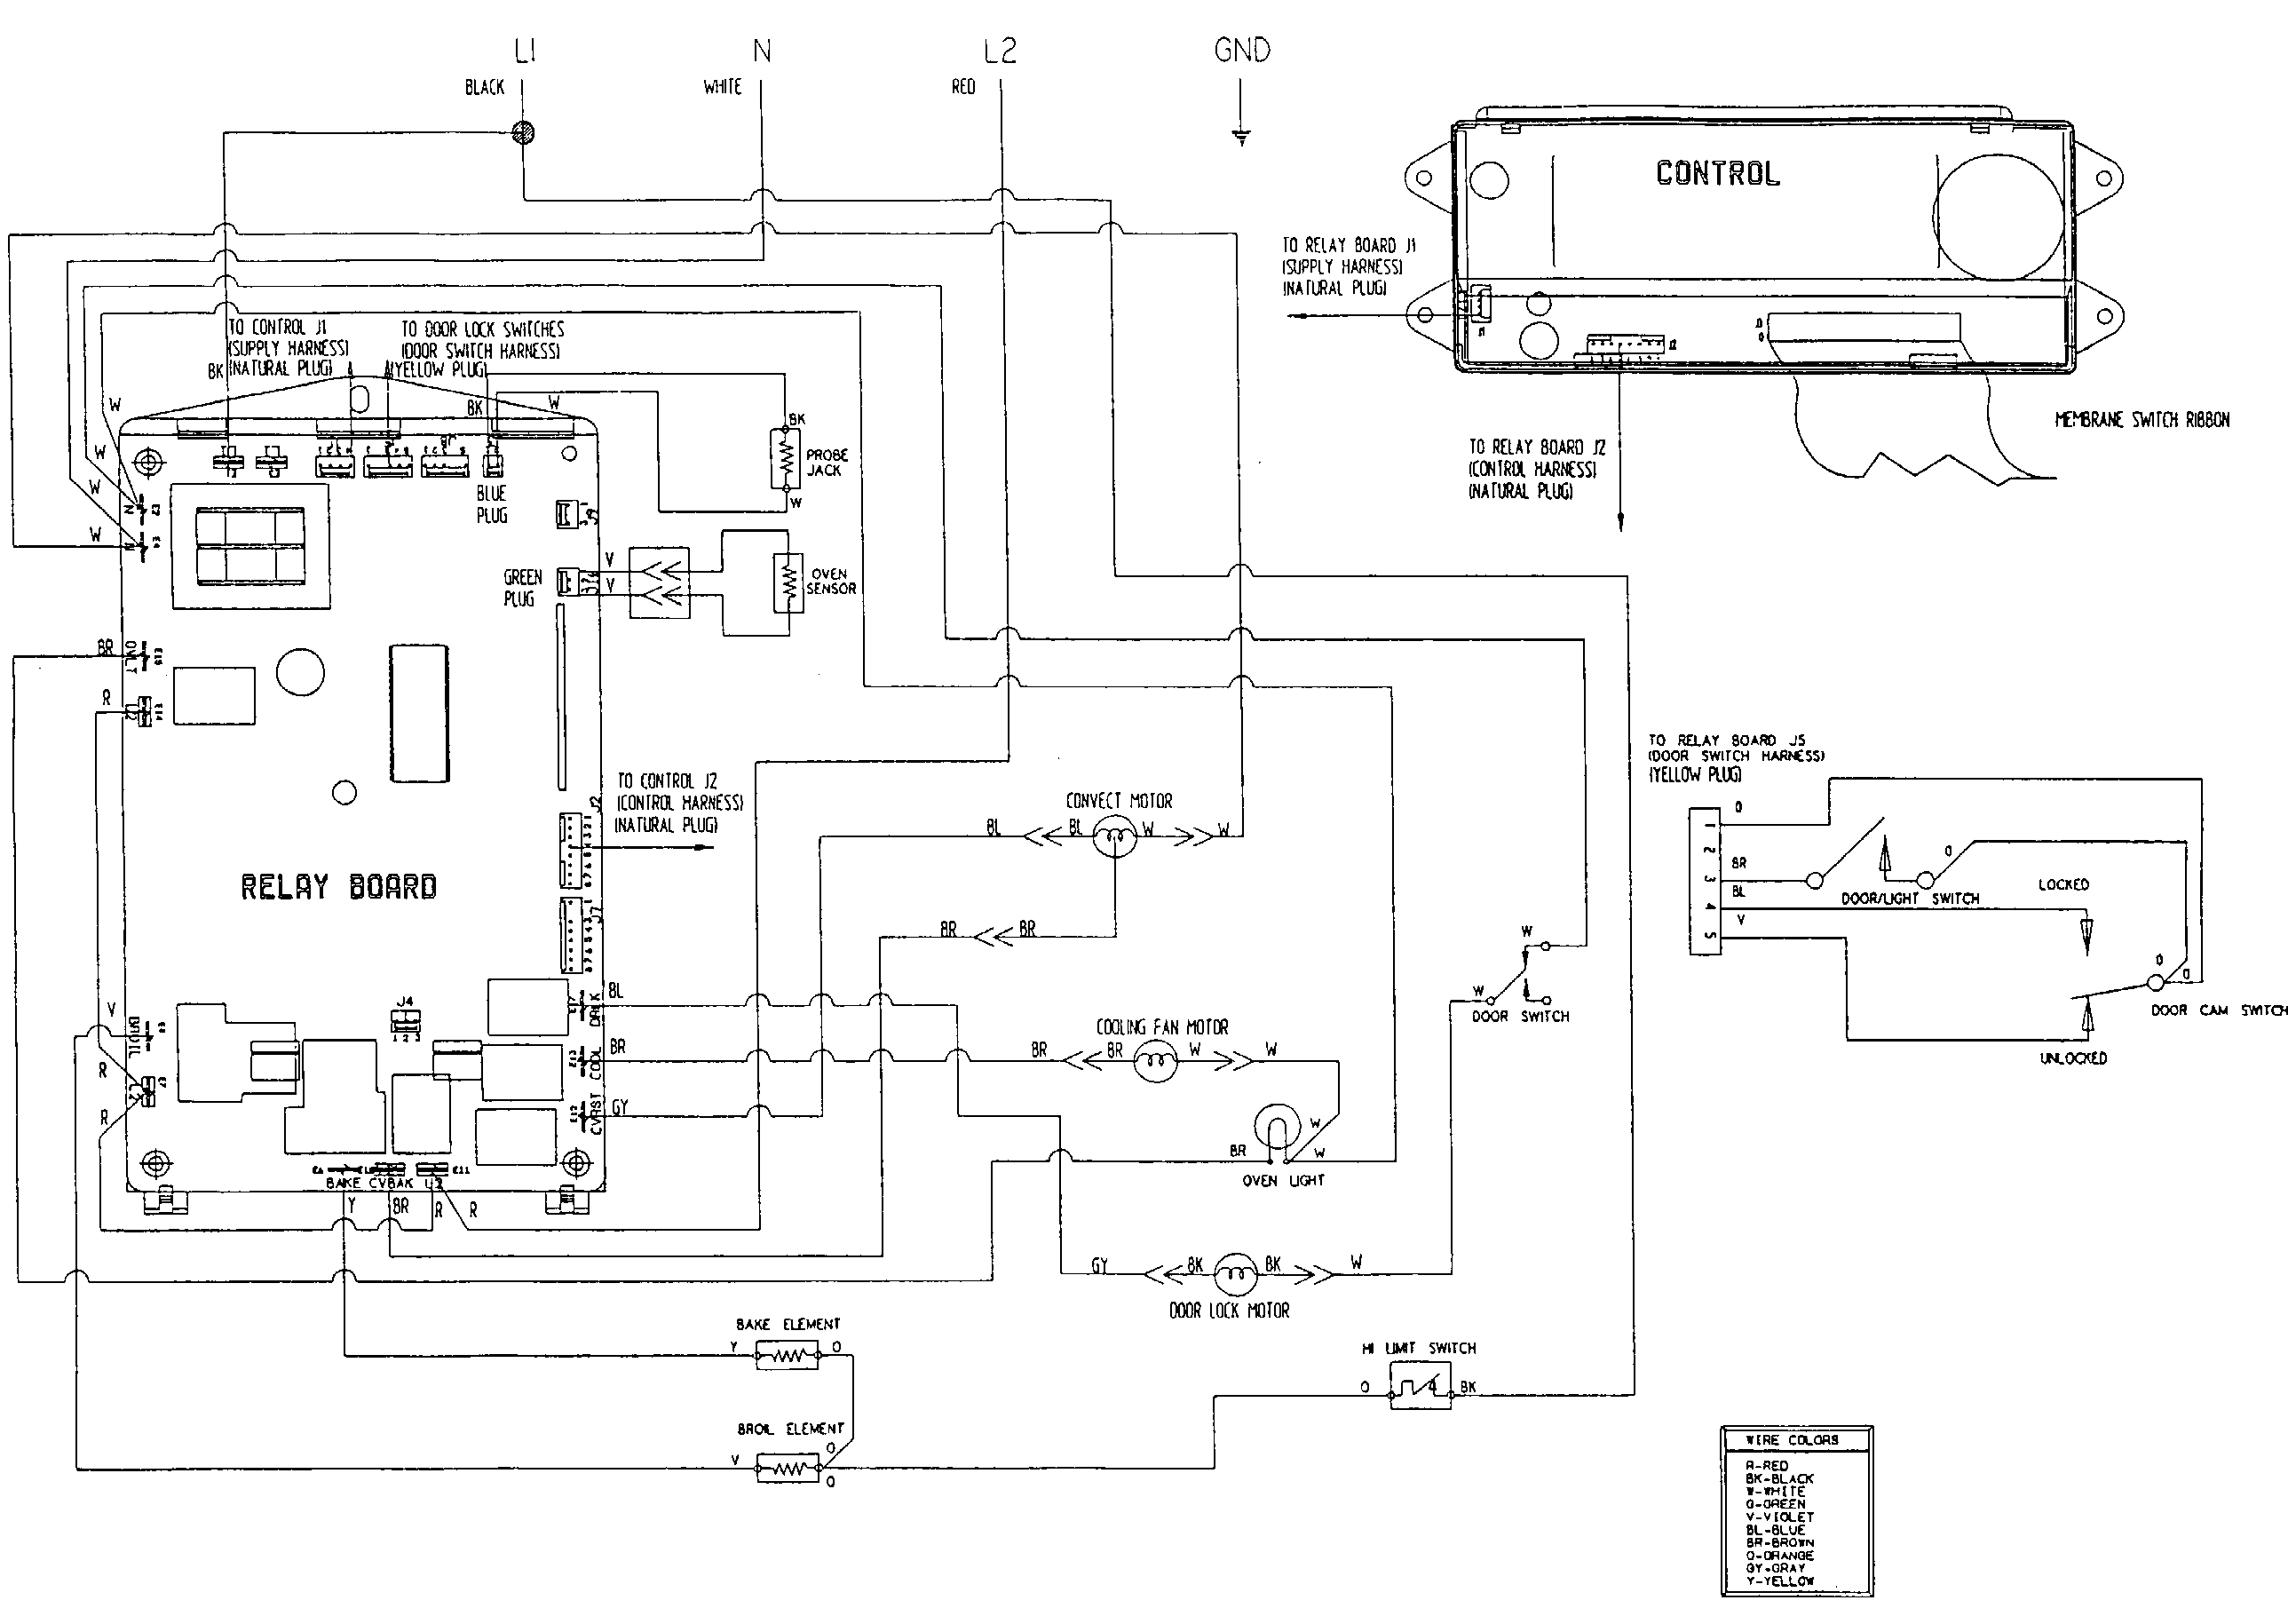 Gas Oven Control Wiring Diagram Electrical Igniter Schematic Completed Diagrams Rh 5 Schwarzgoldtrio De Stove